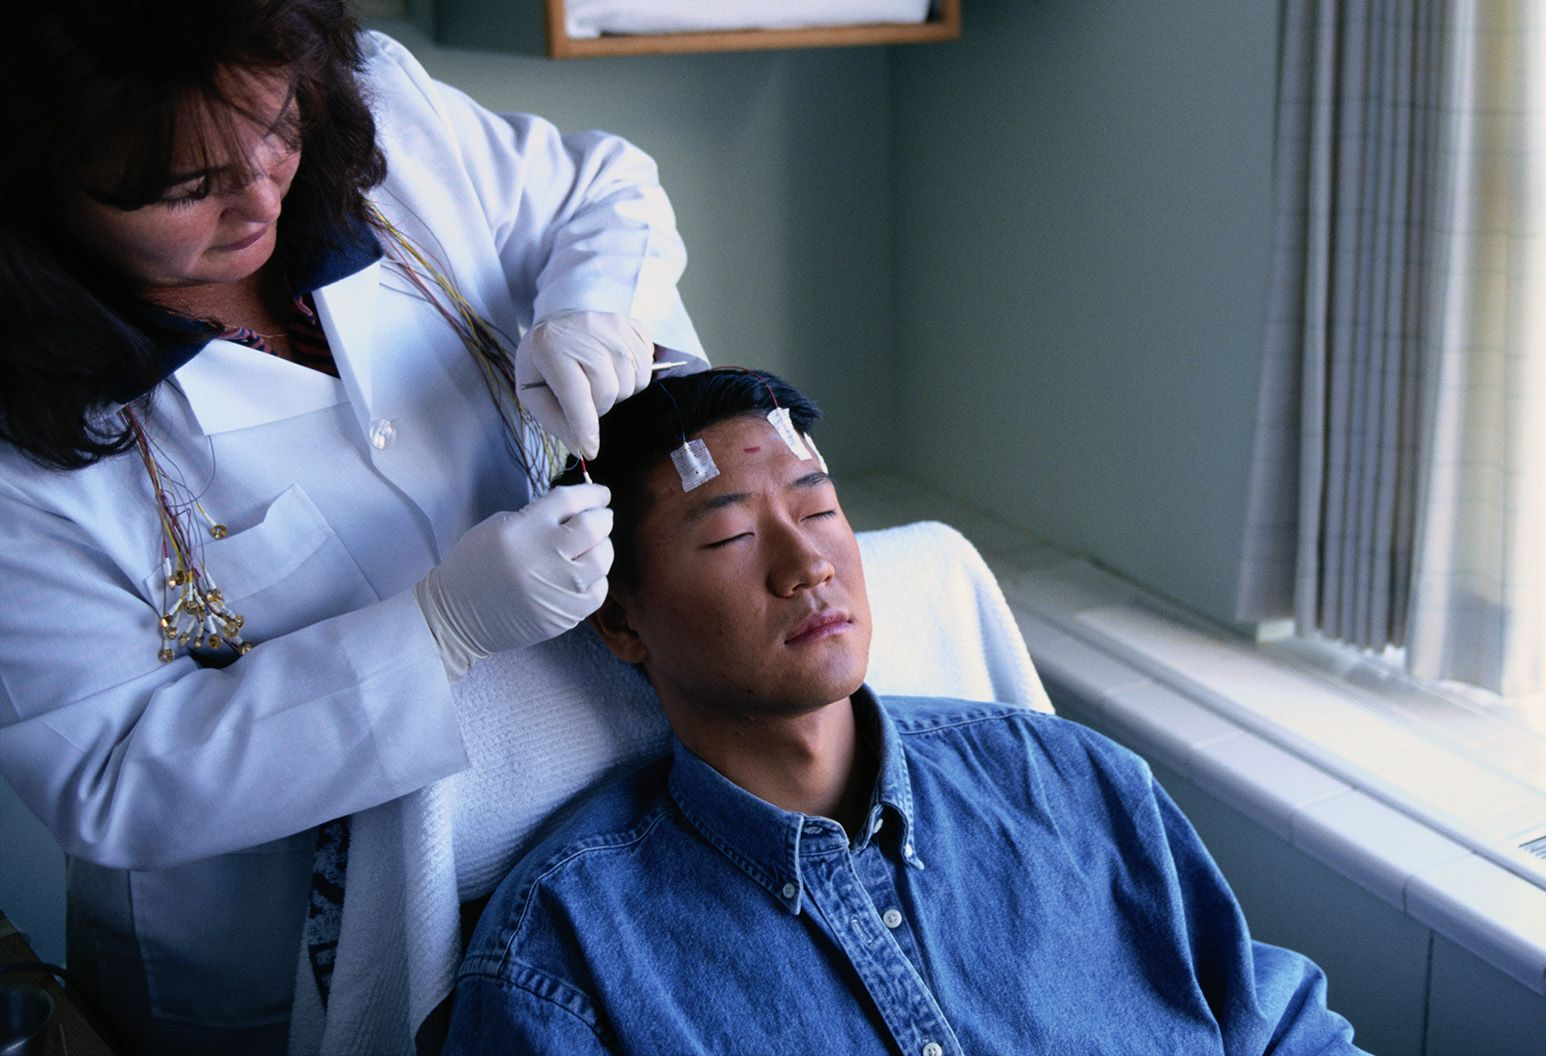 A doctor placing pads on a patients forehead.